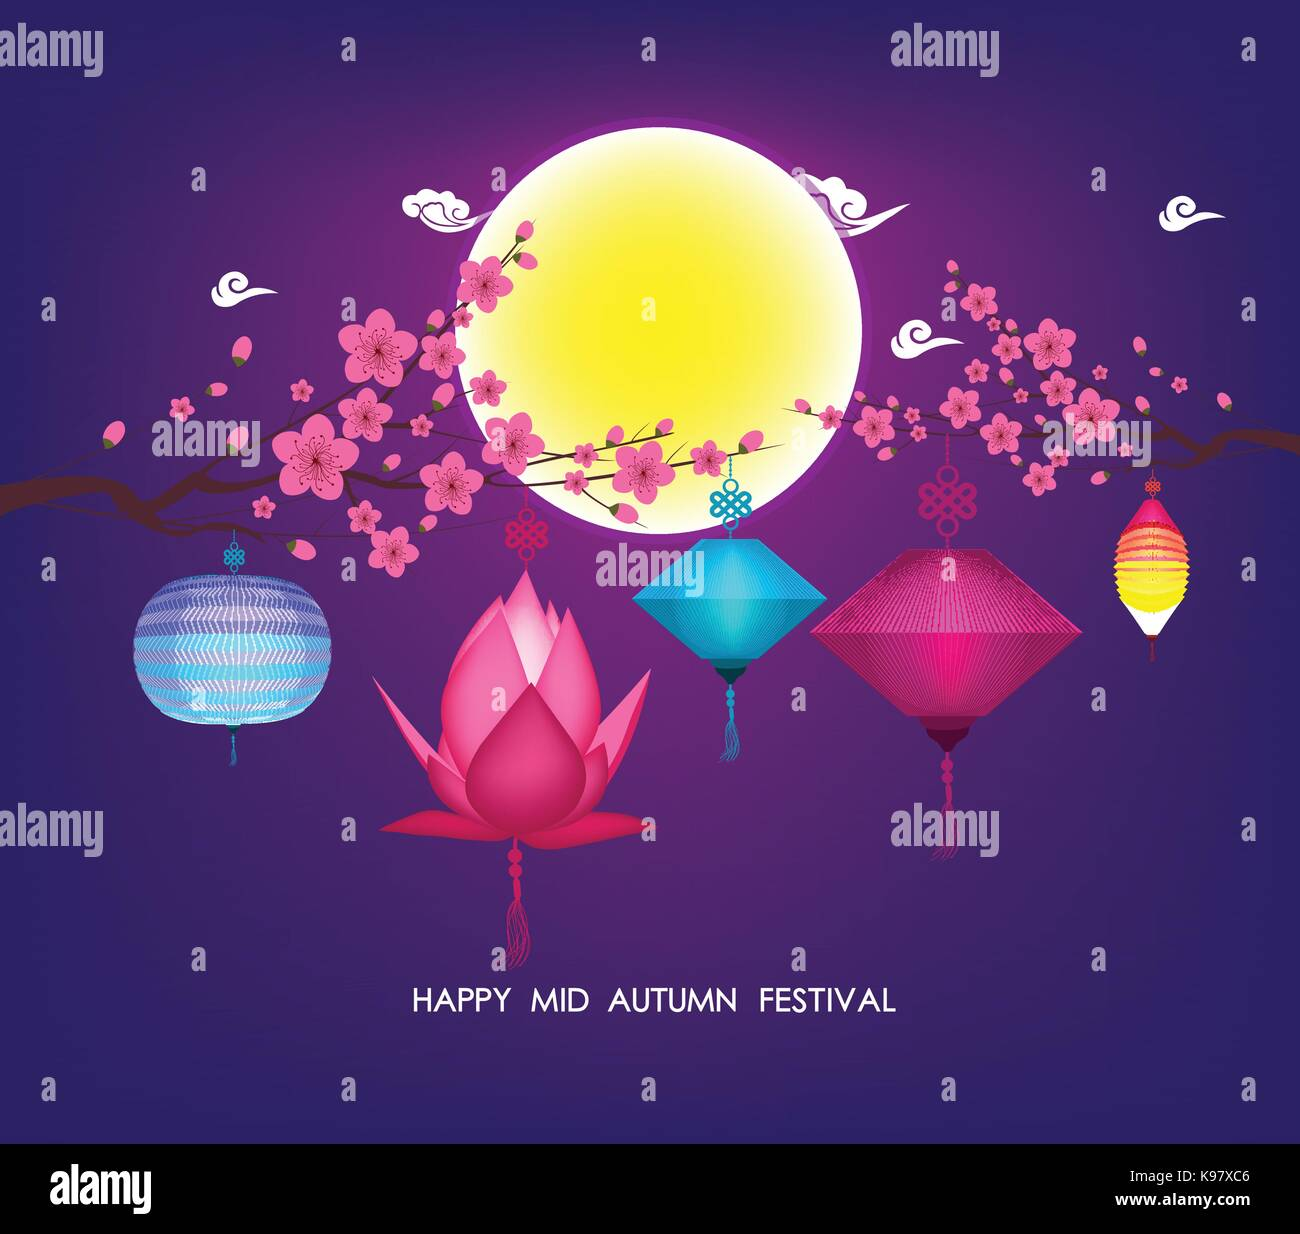 Chinese mid autumn festival graphic stock photos chinese mid chinese mid autumn festival graphic design stock image kristyandbryce Choice Image